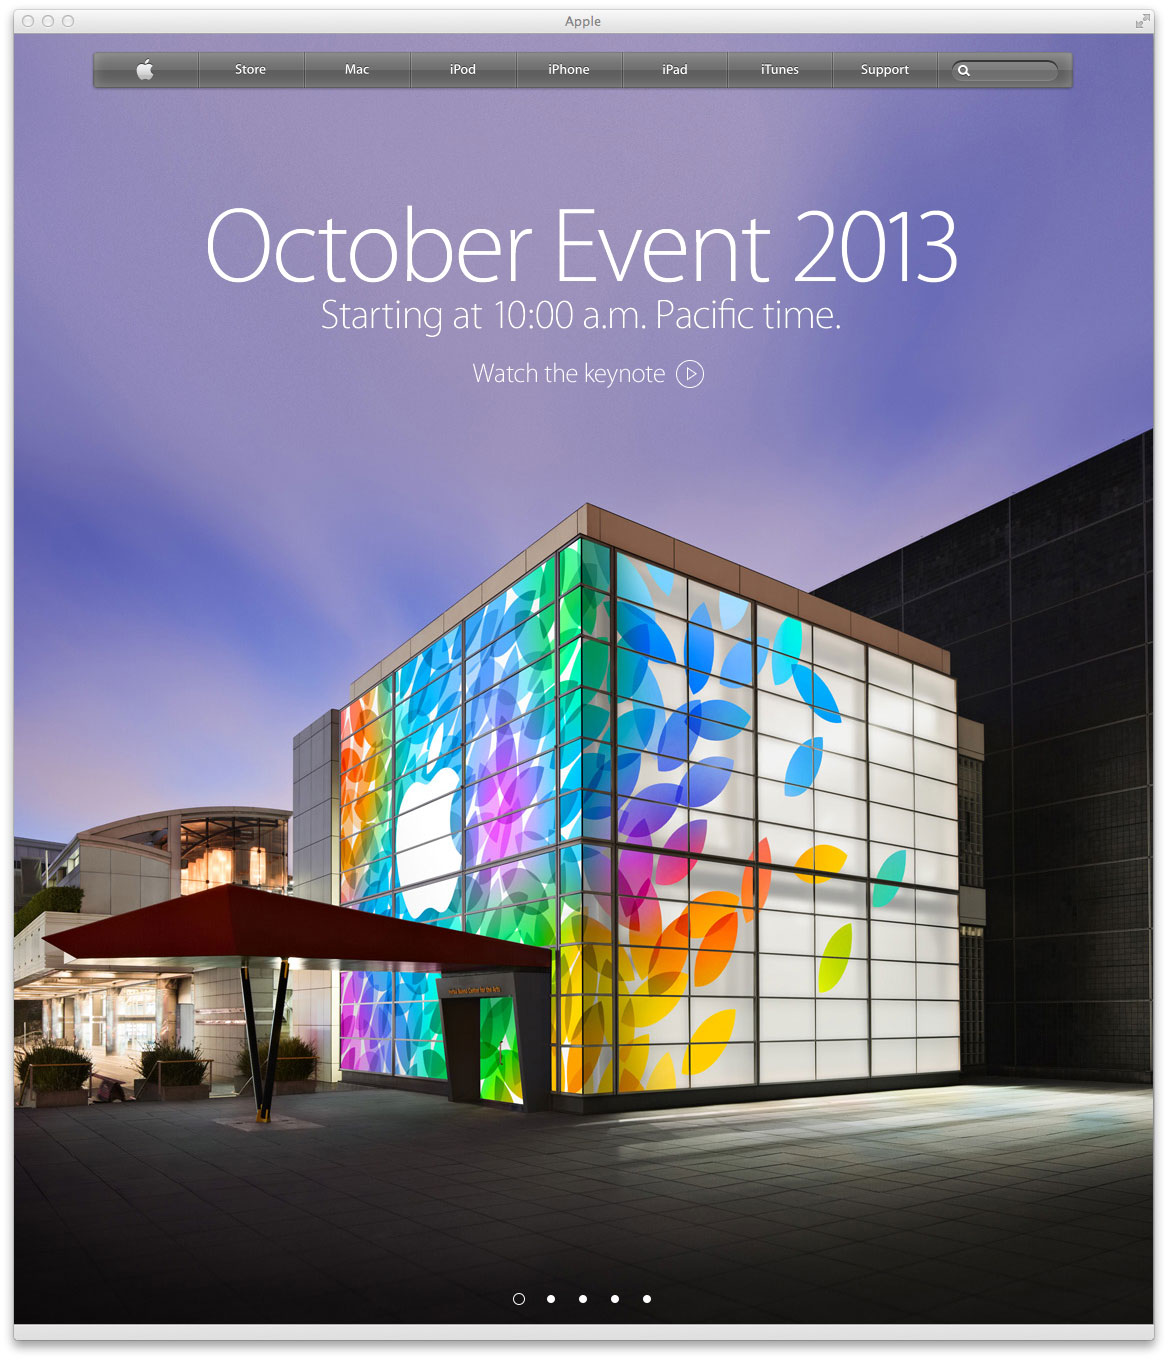 Apple october event 2013